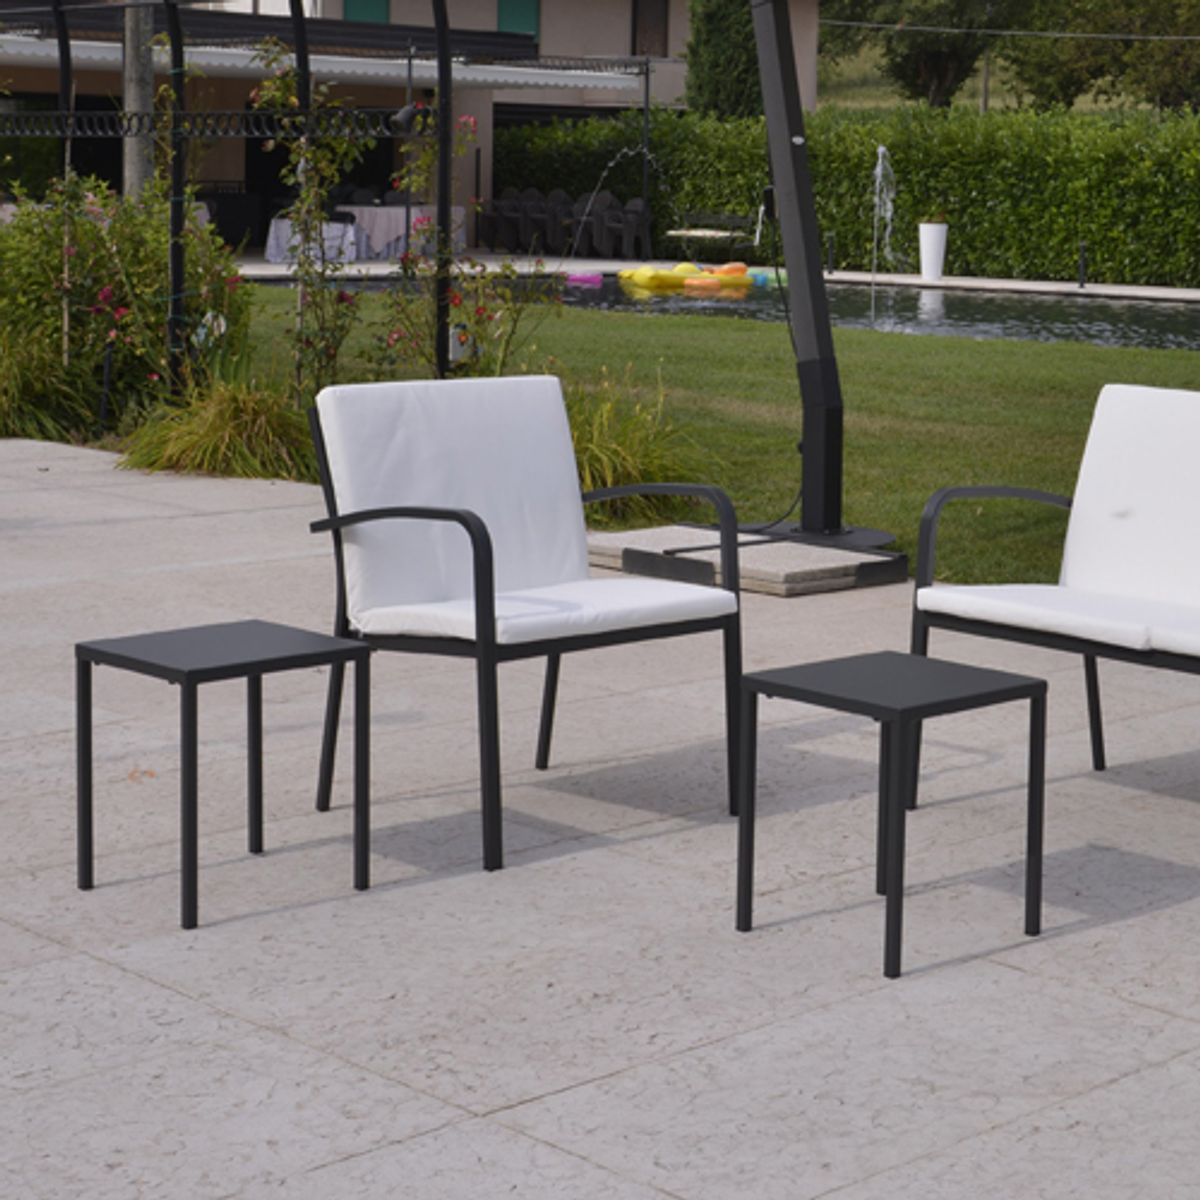 fauteuil de jardin acier et accoudoirs dorio rd italia blanc decoclico. Black Bedroom Furniture Sets. Home Design Ideas